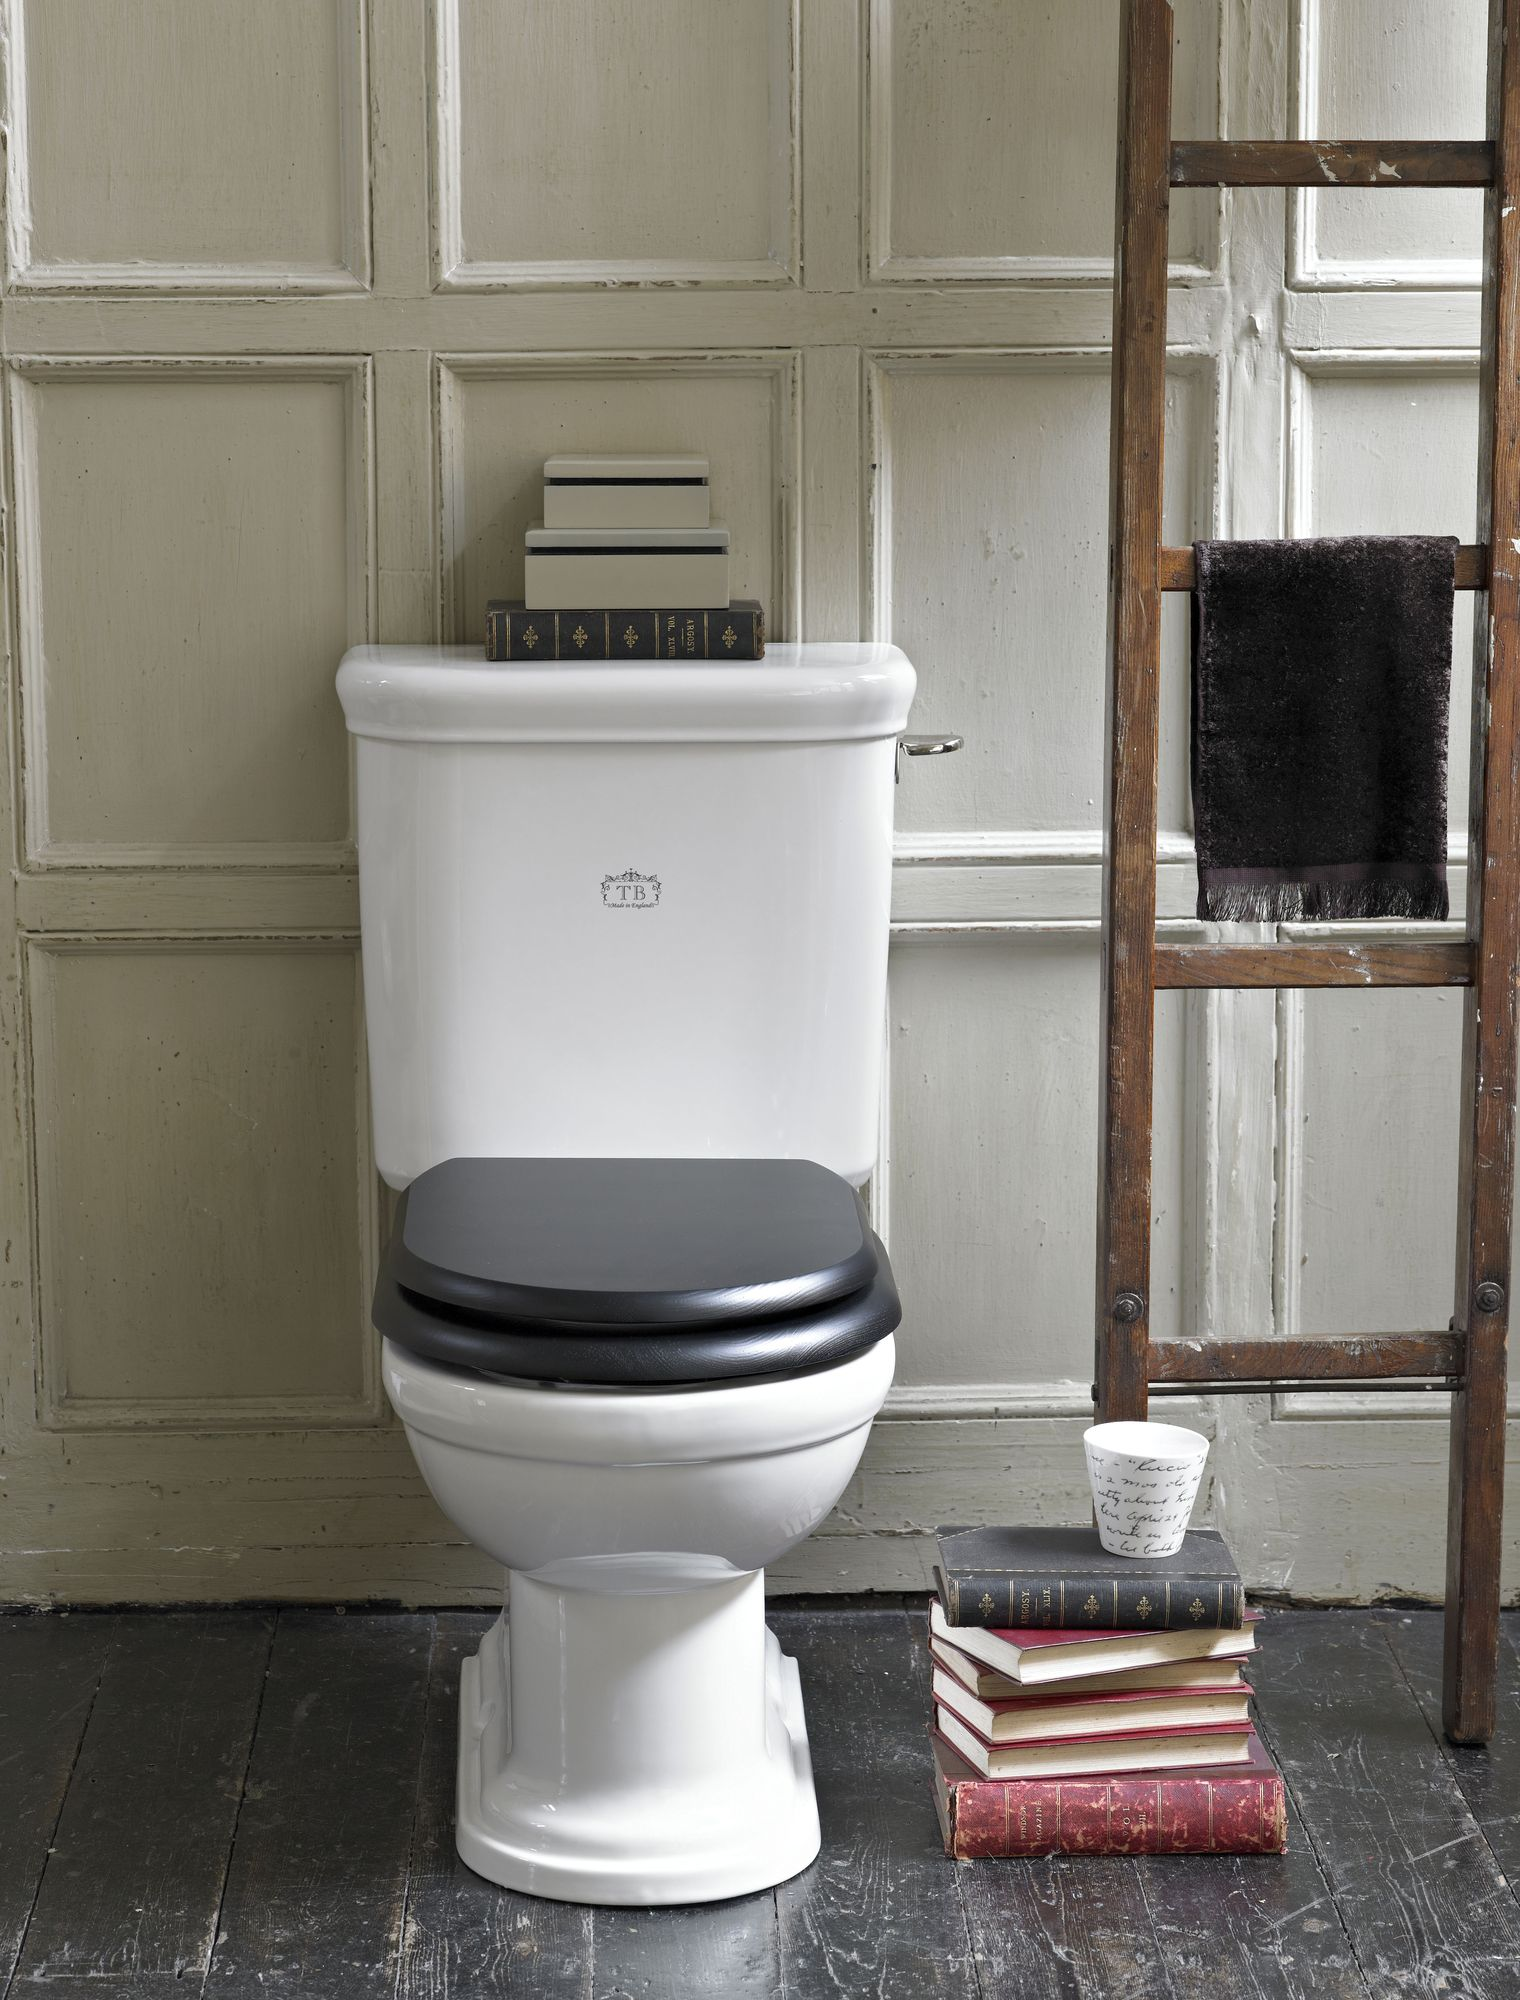 camden wc kombination mit aufgesetztem sp lkasten traditional bathrooms. Black Bedroom Furniture Sets. Home Design Ideas